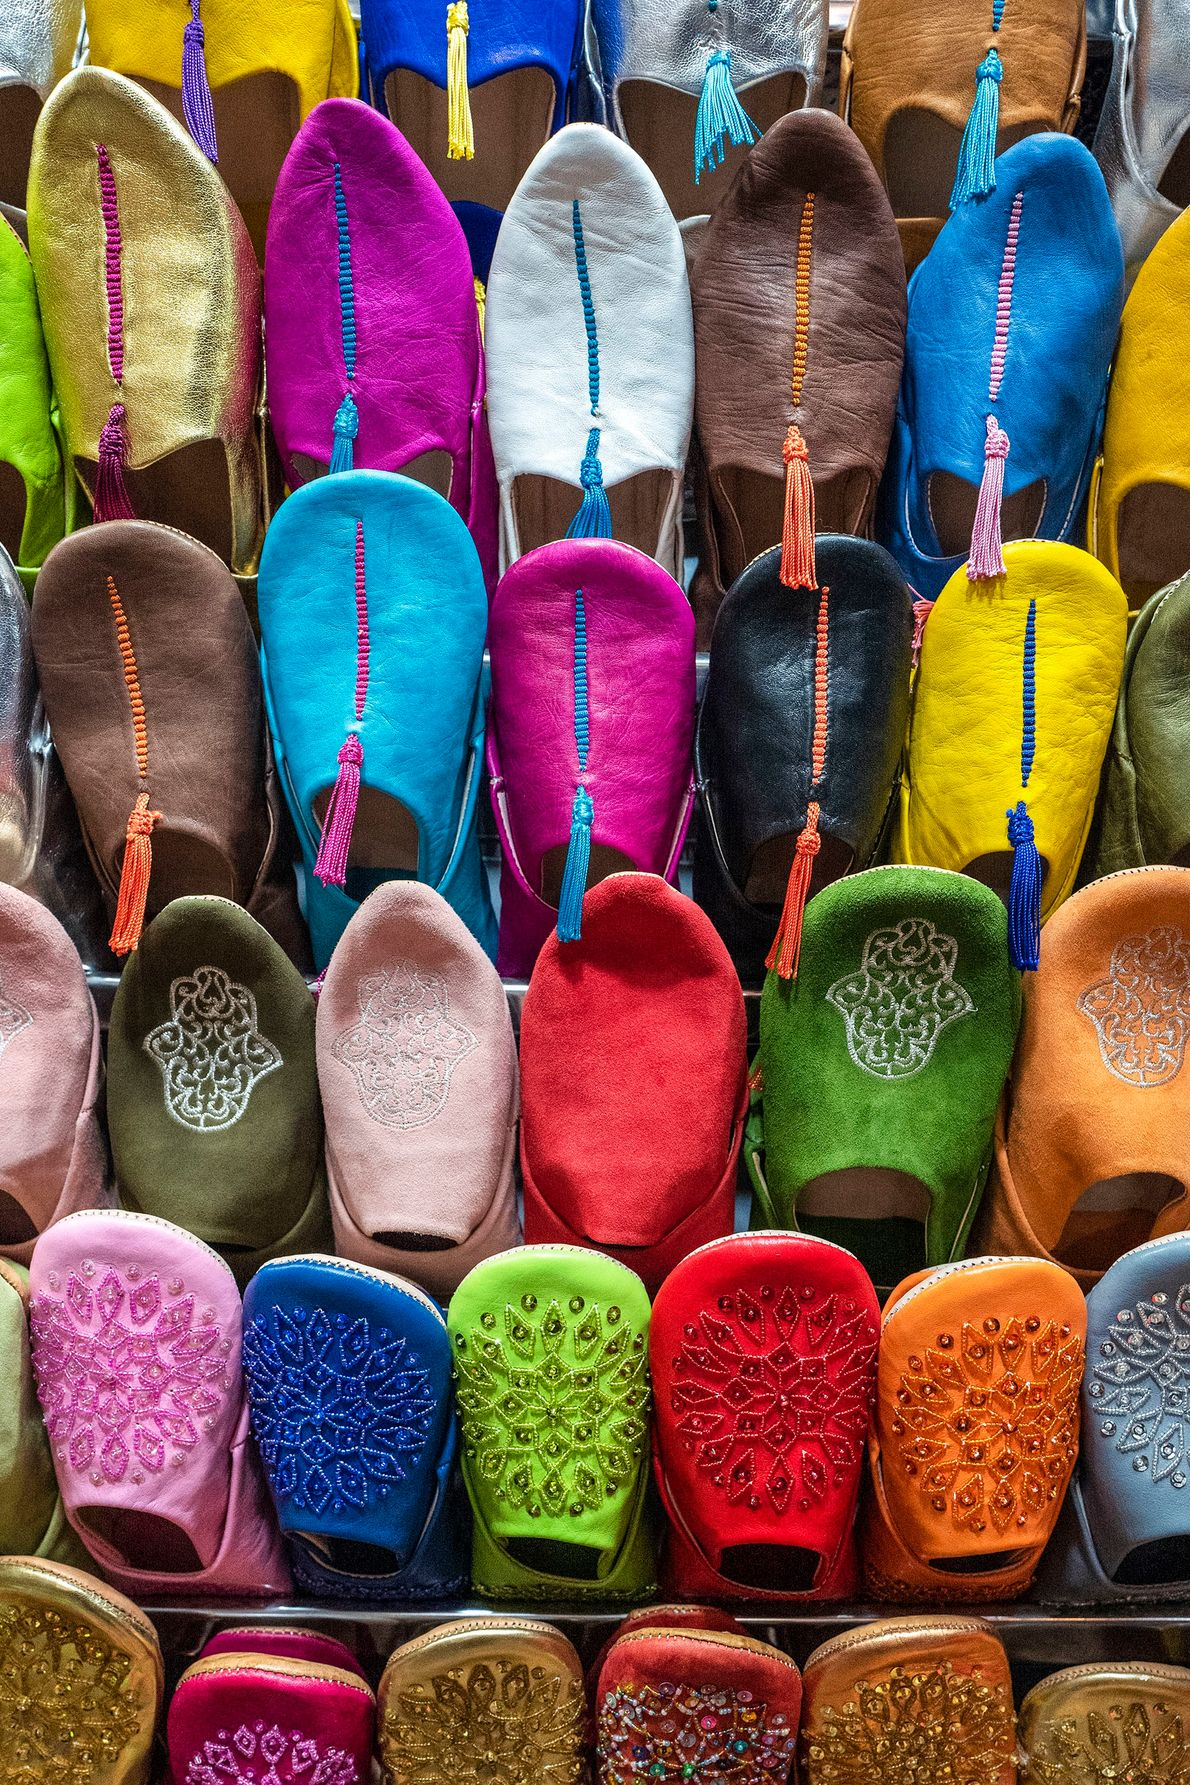 A colourful display of expertly crafted Moroccan slippers for sale in the famous slipper souk of ...